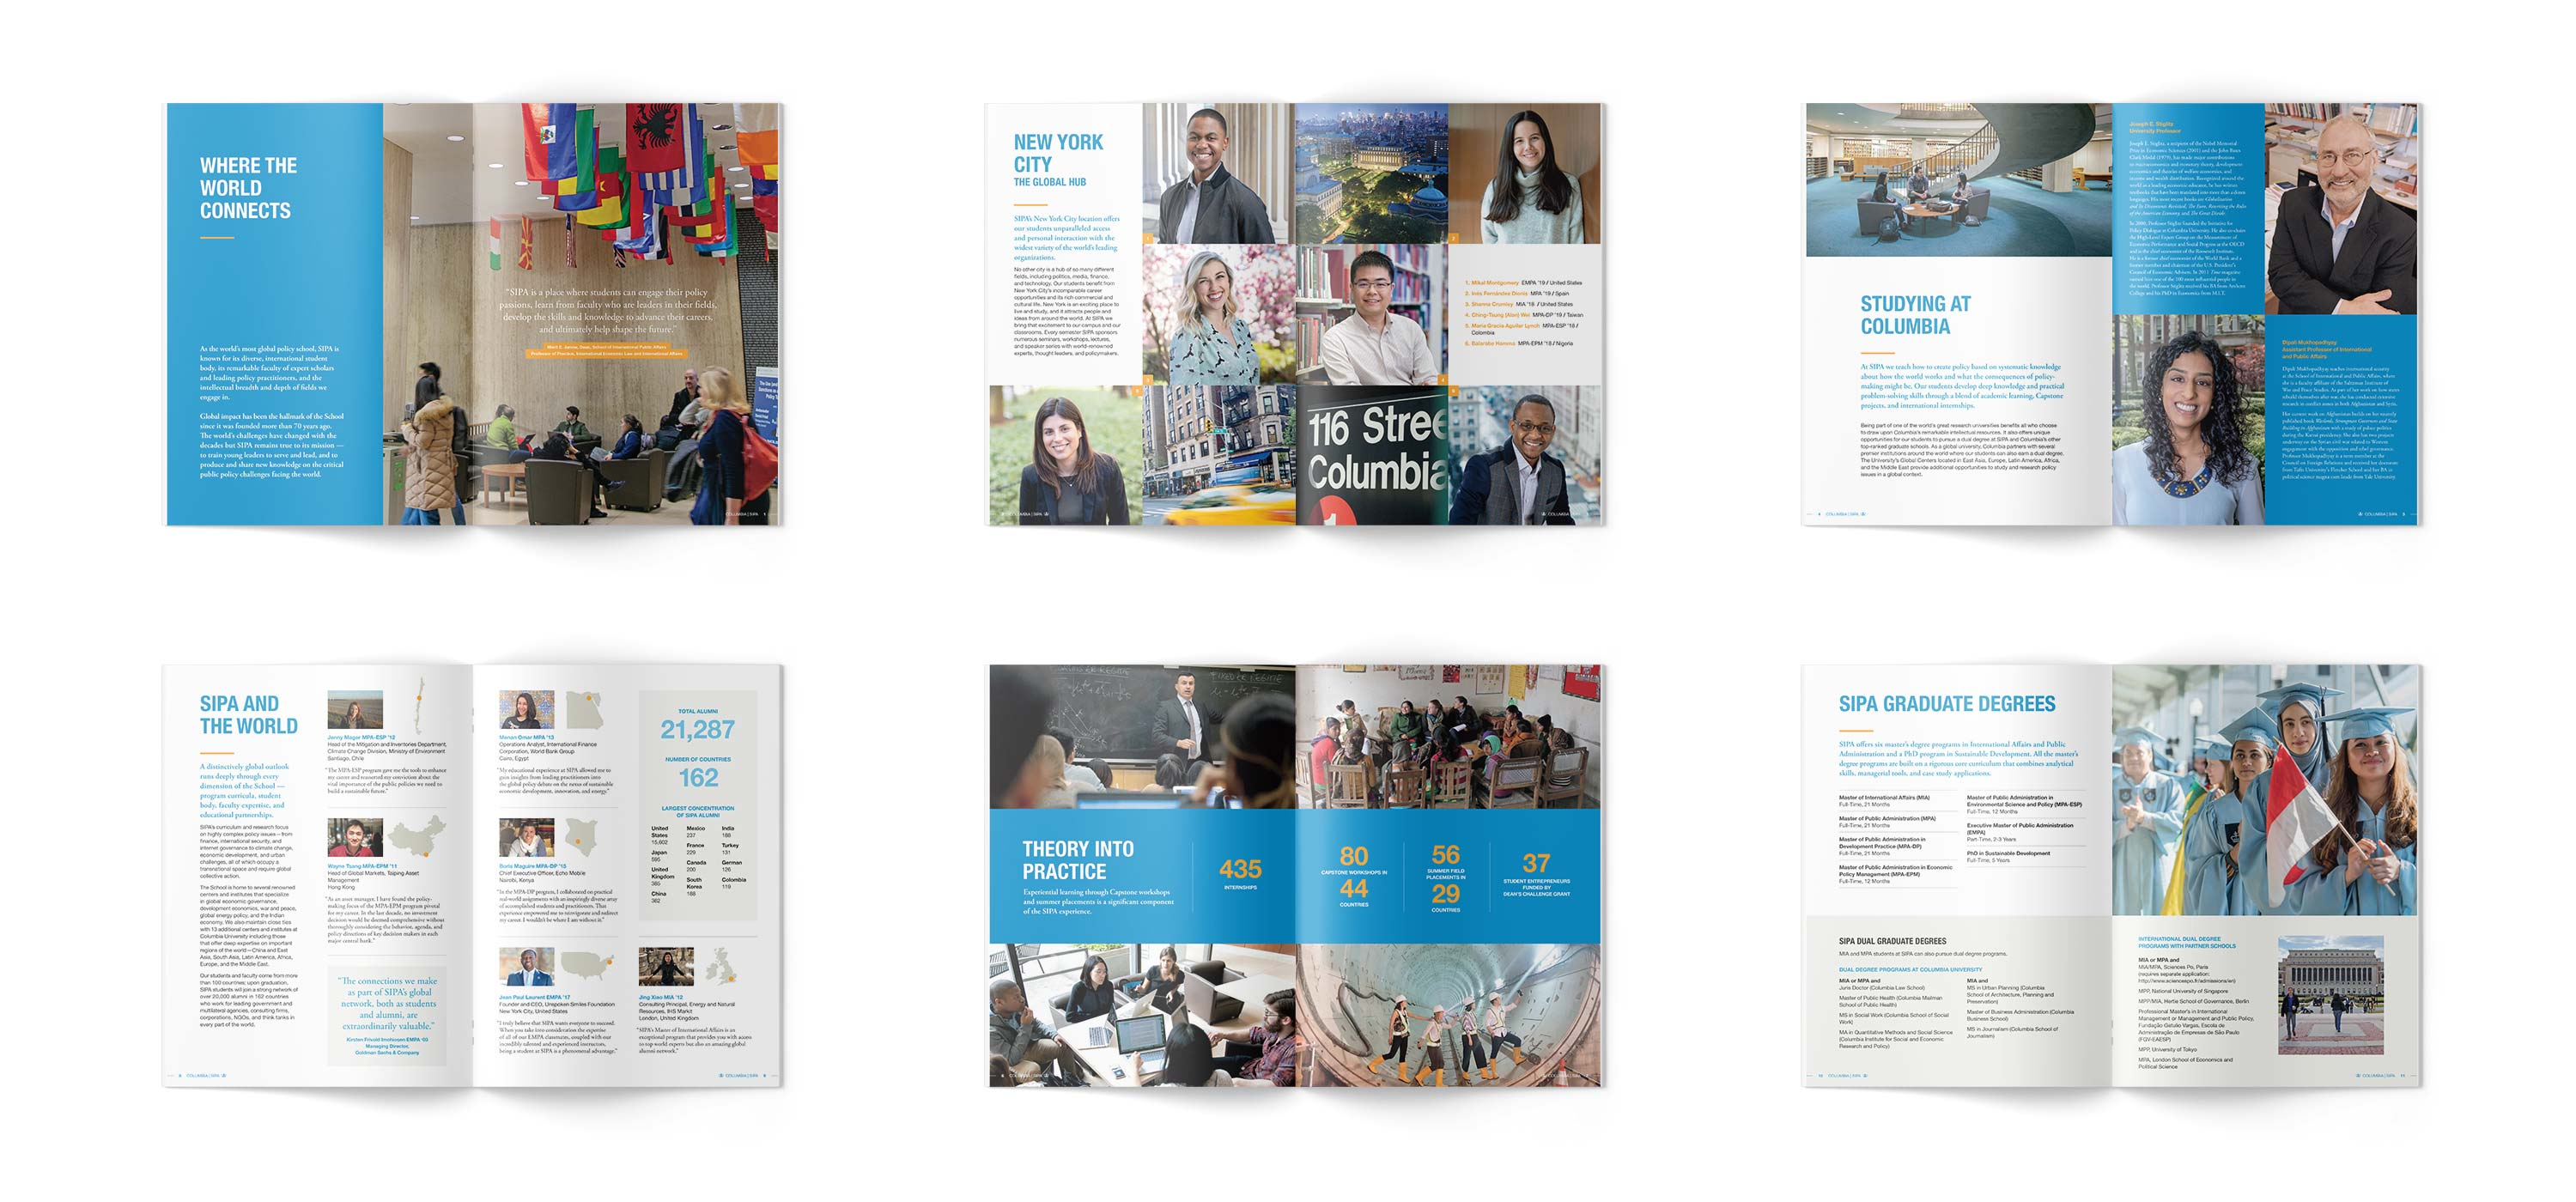 Columbia SIPA Admissions Brochure interior spreads